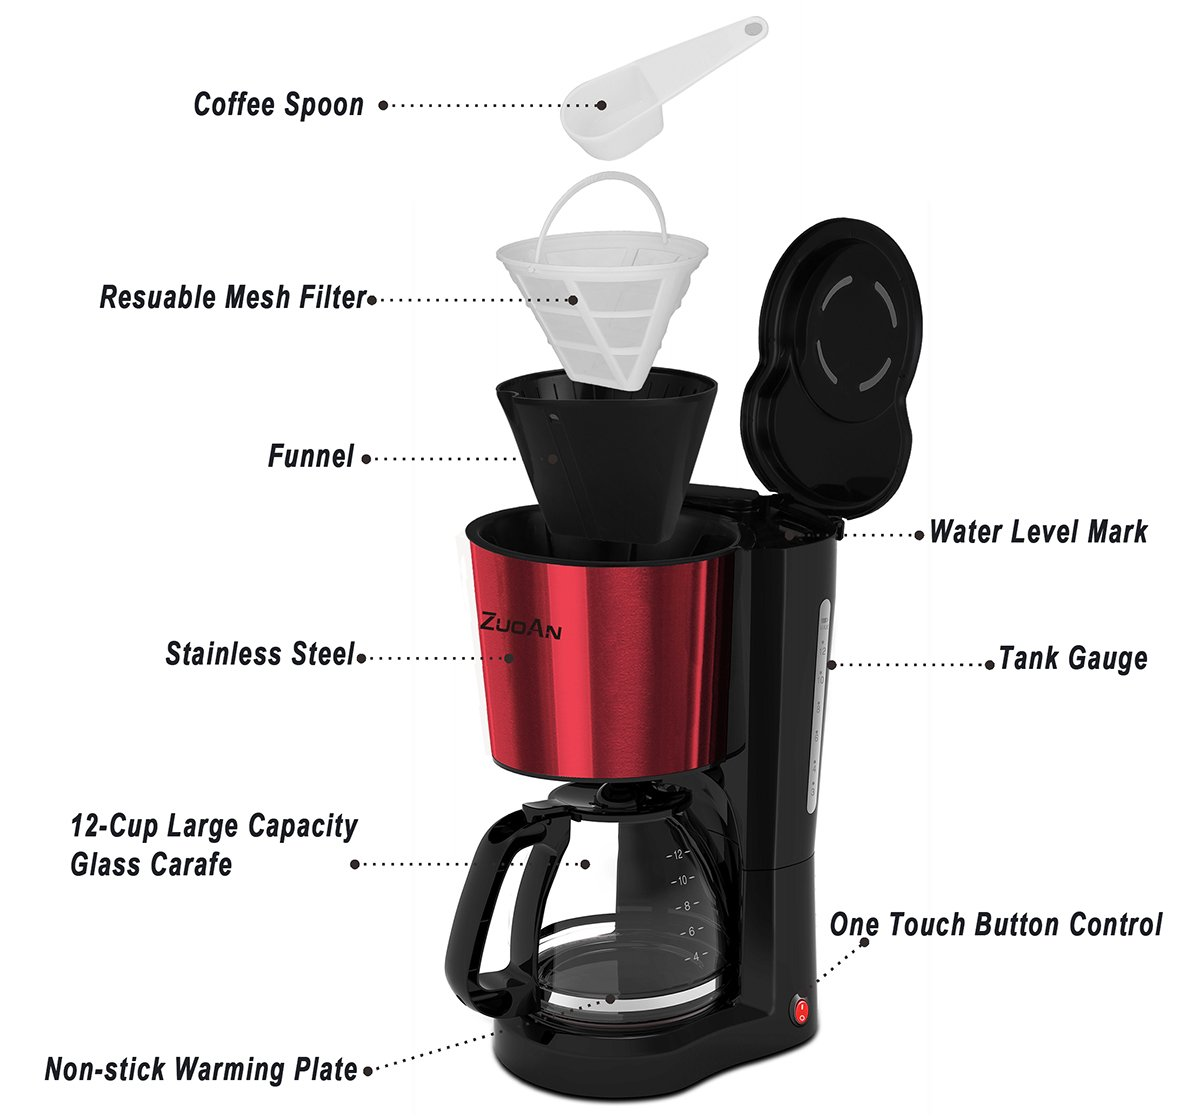 Coffee Make 12-Cup Drip Coffeemakerr,ZuoAn With Glass Coffee Pot and Reusable Mesh Filter, Stainless Steel Coffee Machine,Black Large Capacity, CM-601 Black+Red (Black+Red) by ZUOAN (Image #2)